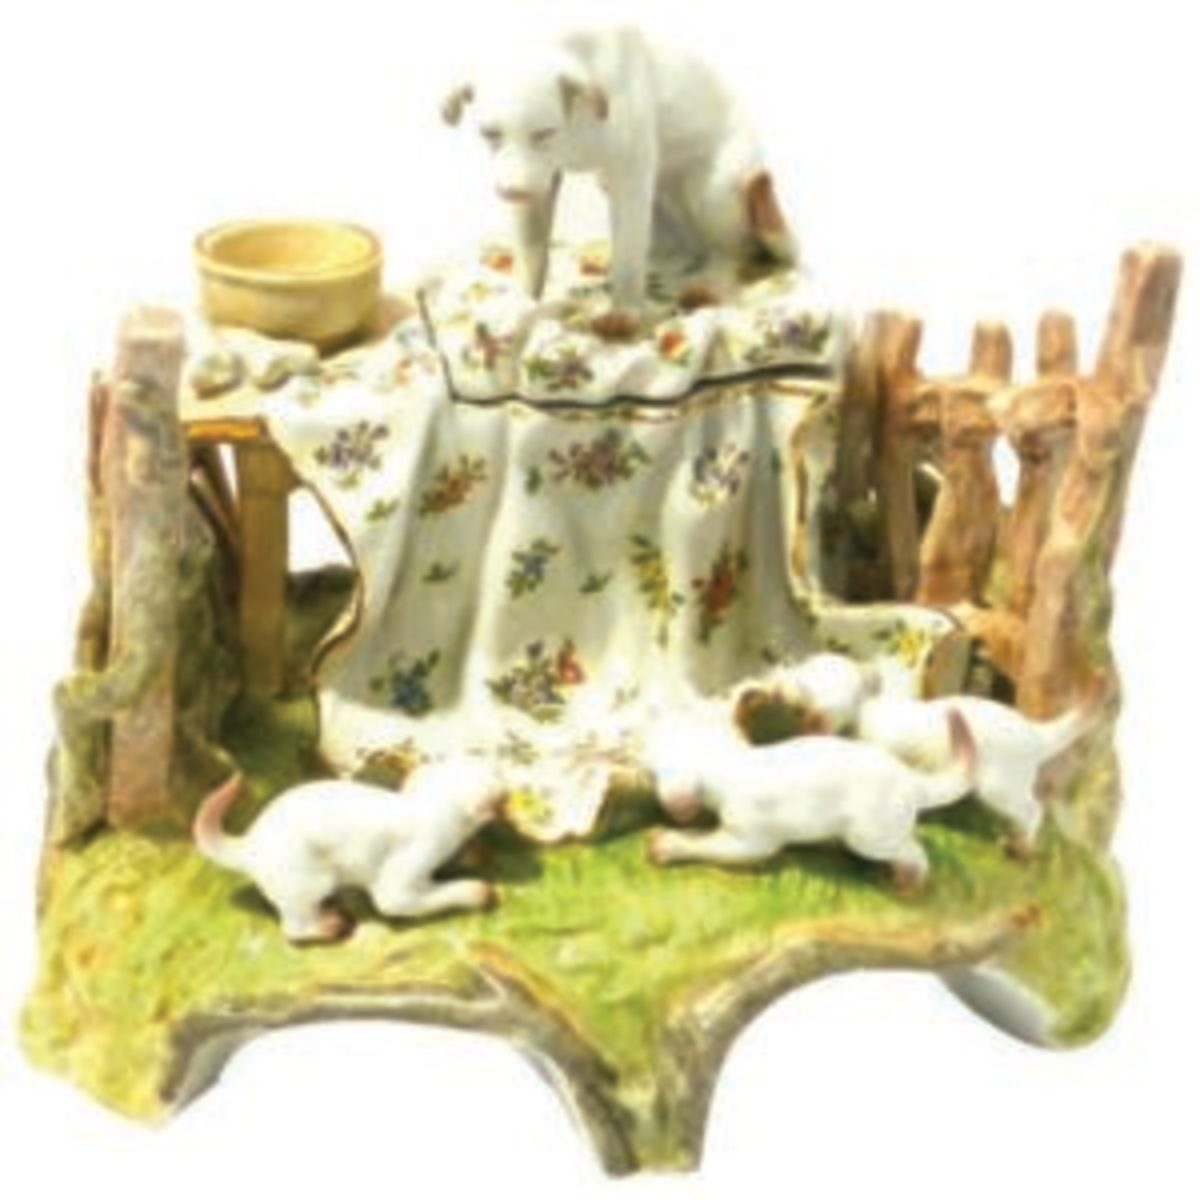 O'Connor loves the story this Conta & Boehme porcelain inkwell tells of a mother dog and her rambunctious pups. Image courtesy of A Dog's Tale Collectibles